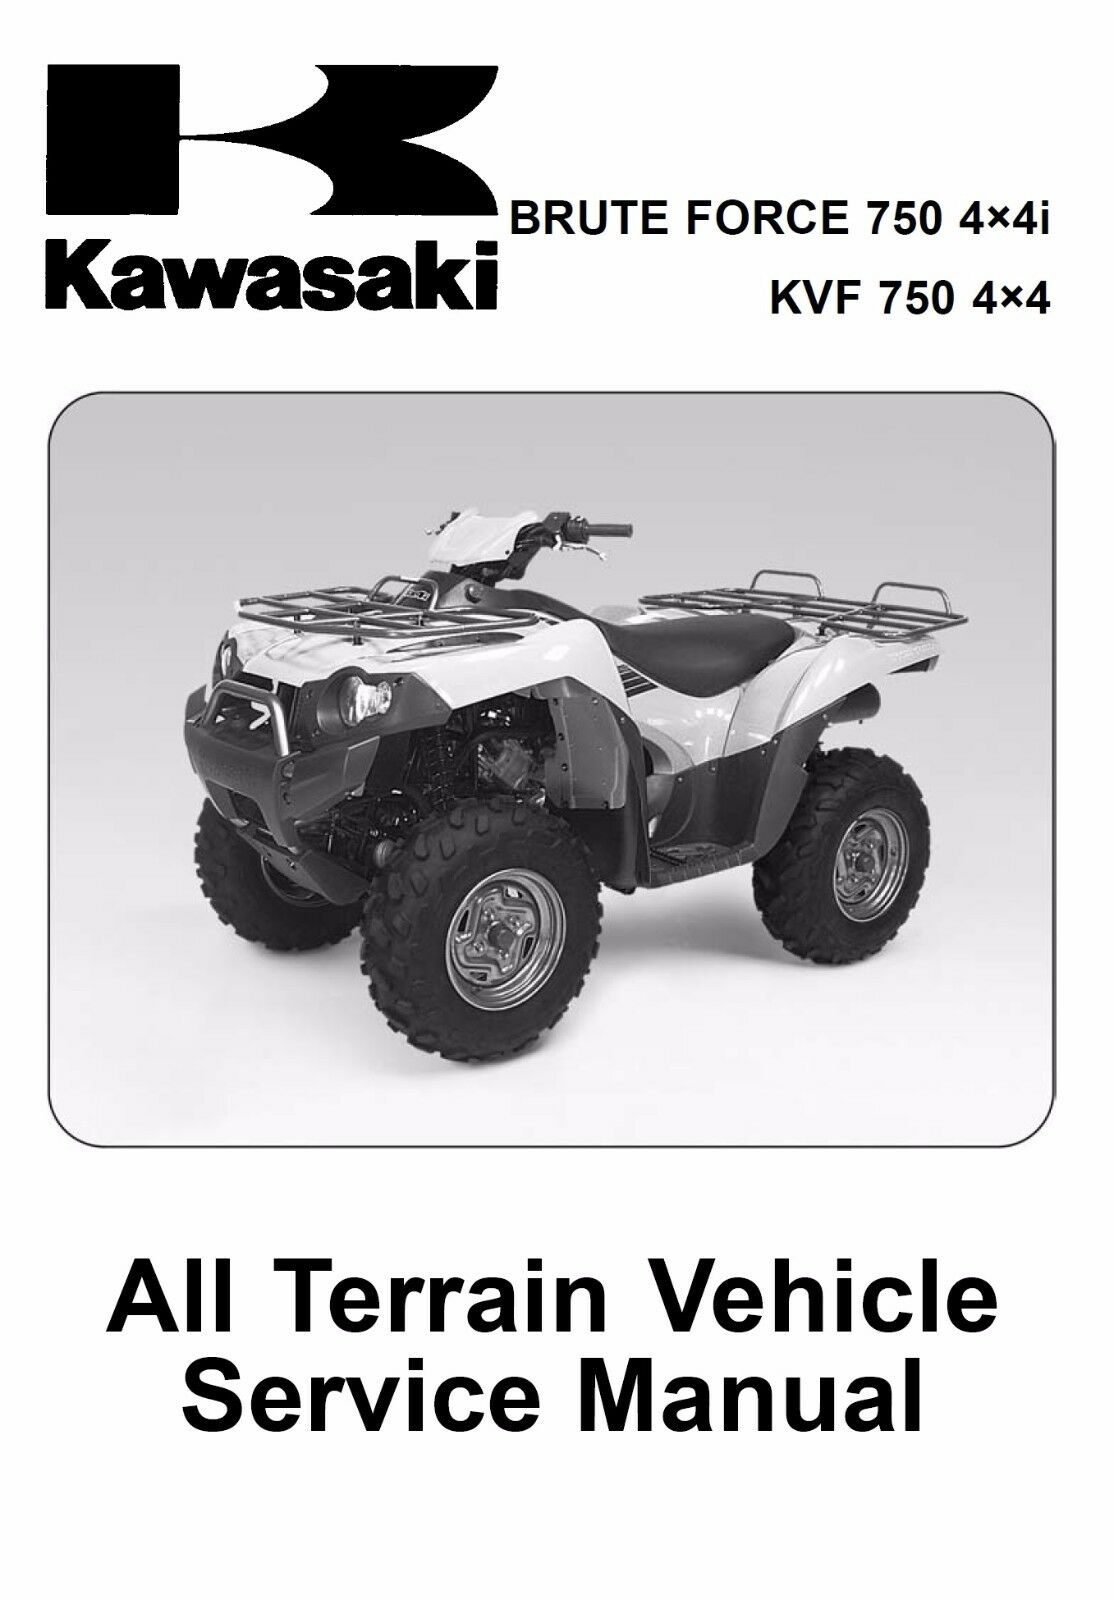 Kawasaki 2005 2006 2007 Brute Force 750 4x4i KVF750 4x4 service manual in  binder 1 of 2Only 1 available ...